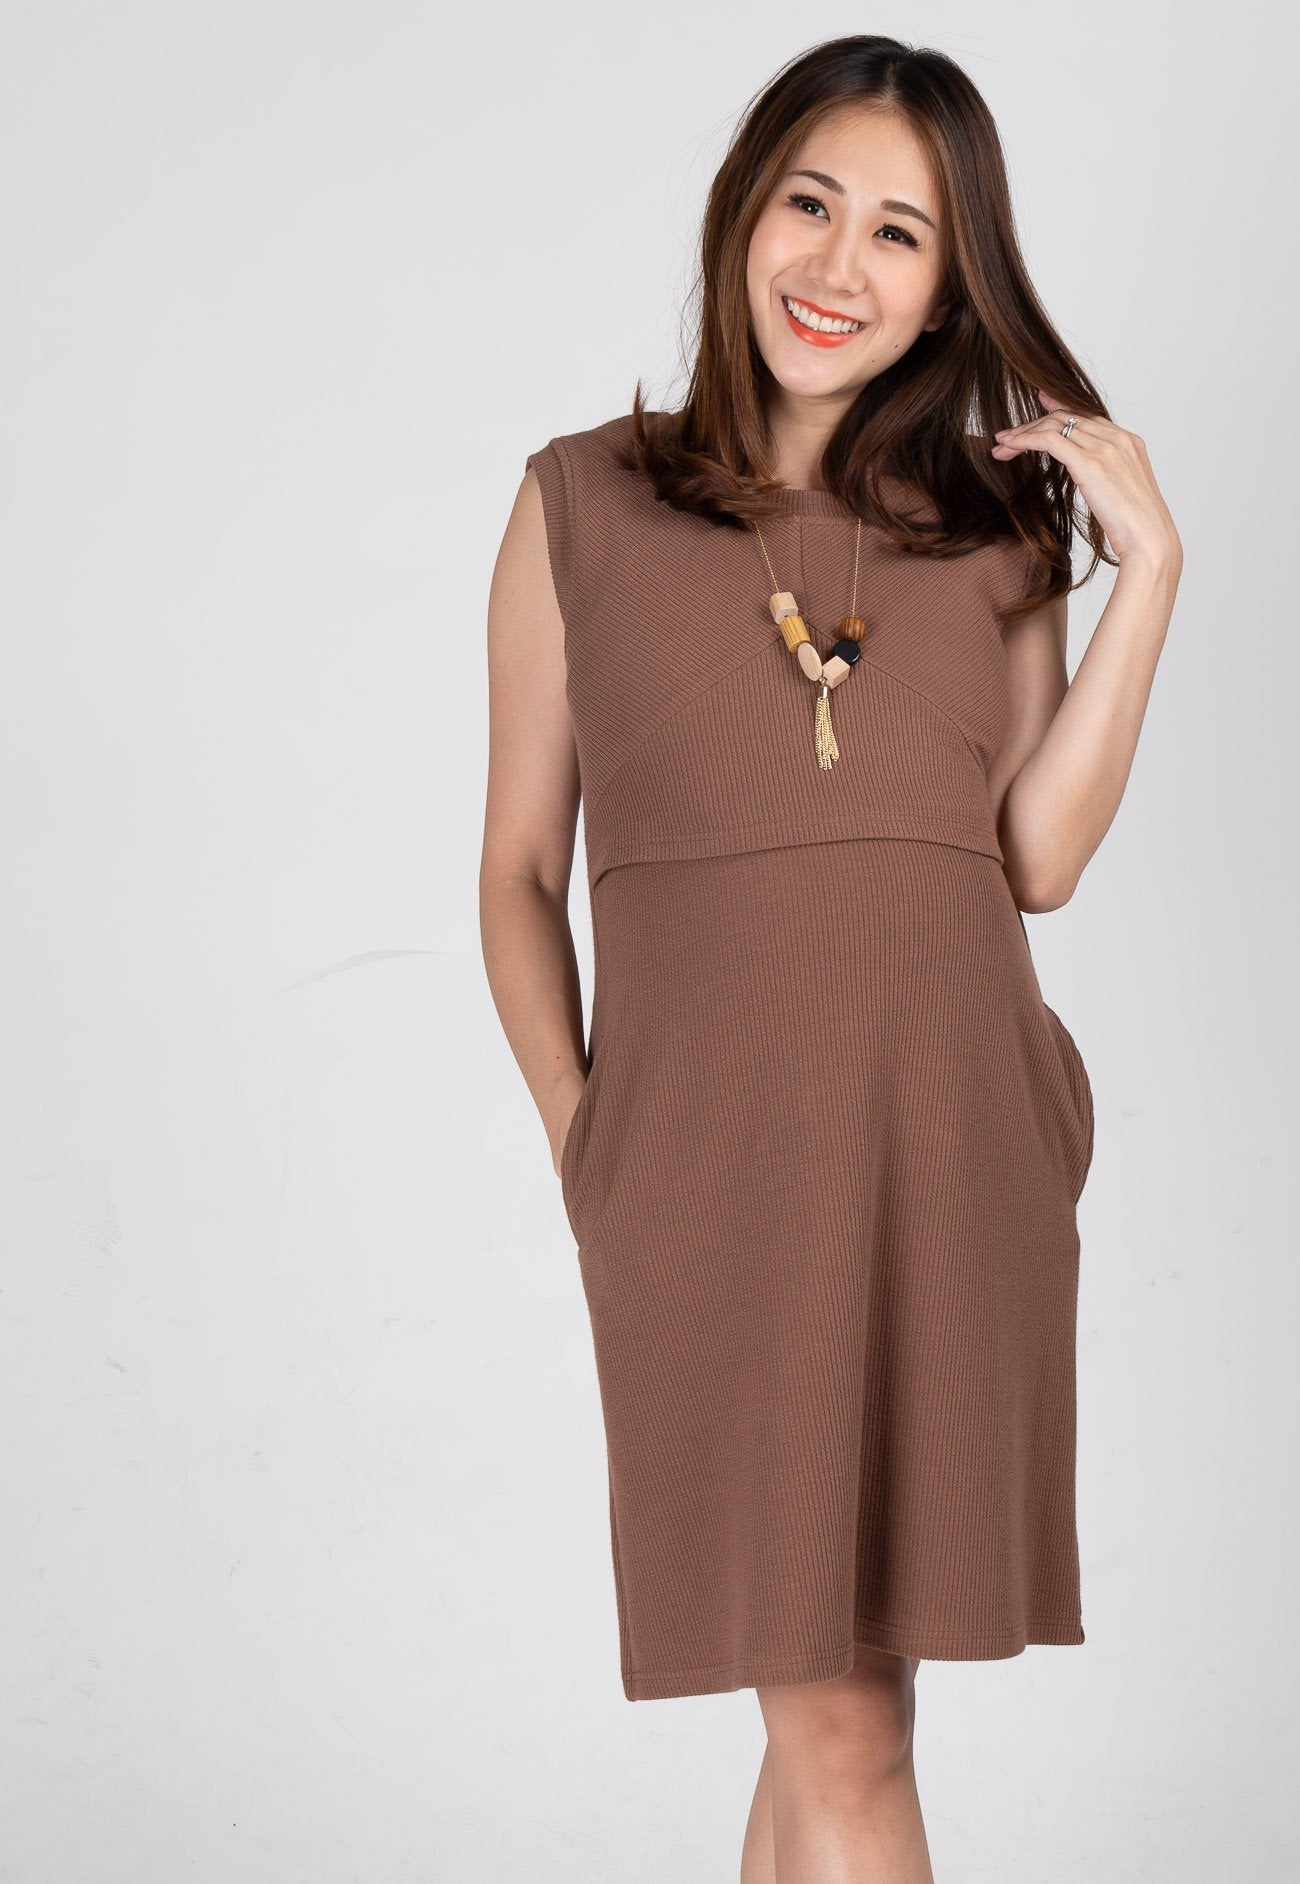 Mothercot Cassiel Knit Nursing Dress in Grey Brown  by JumpEatCry - Maternity and nursing wear